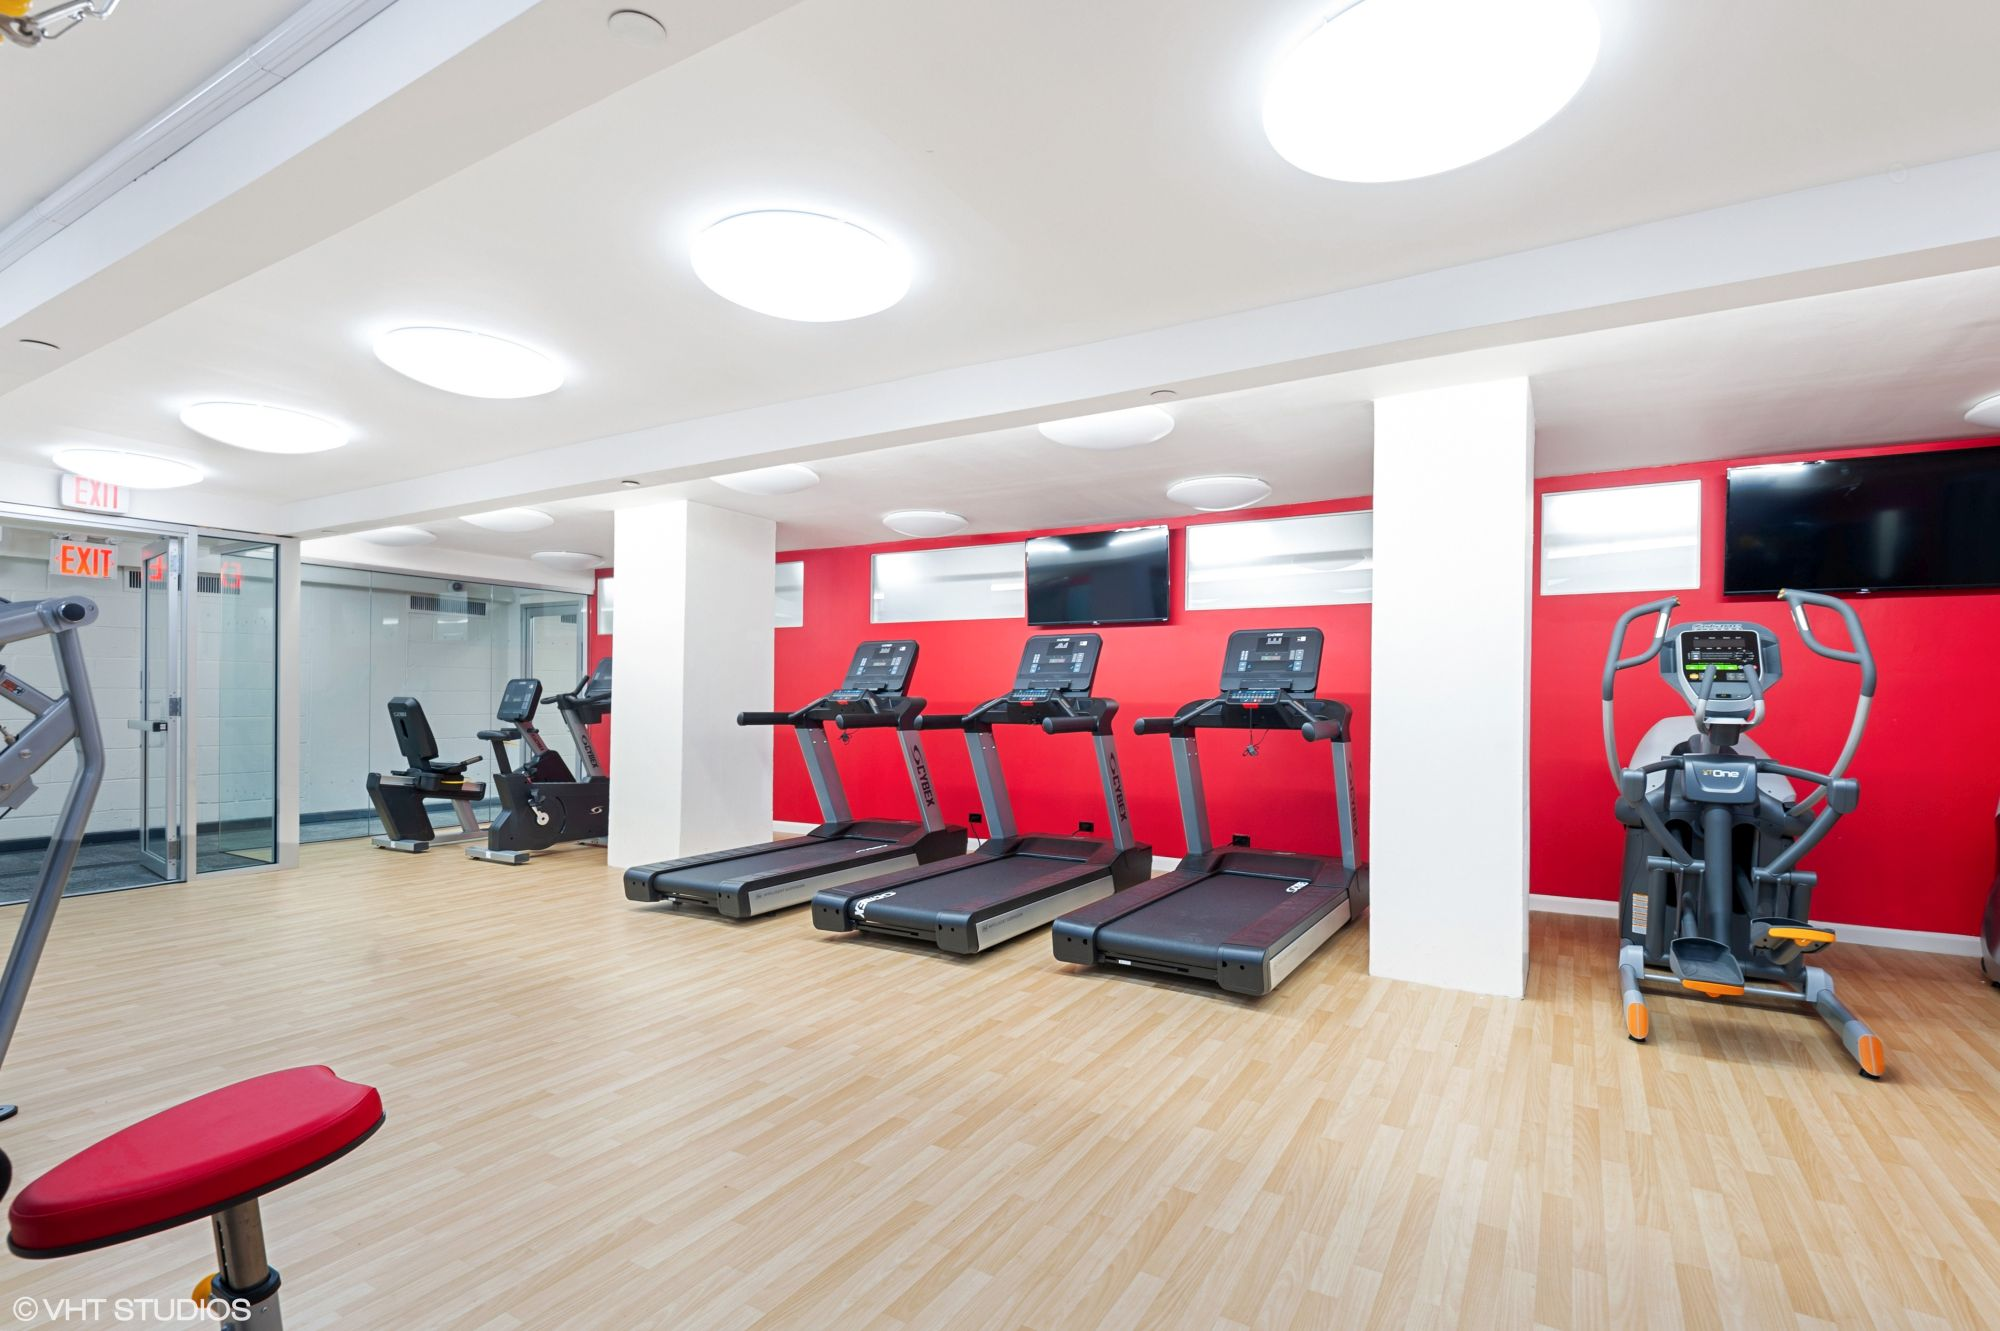 The fitness center at The Promenade, located in Marble Hill, is outfitted with state-of-the-art cardio machines, including new treadmills, elliptical, and recumbent bicycle.